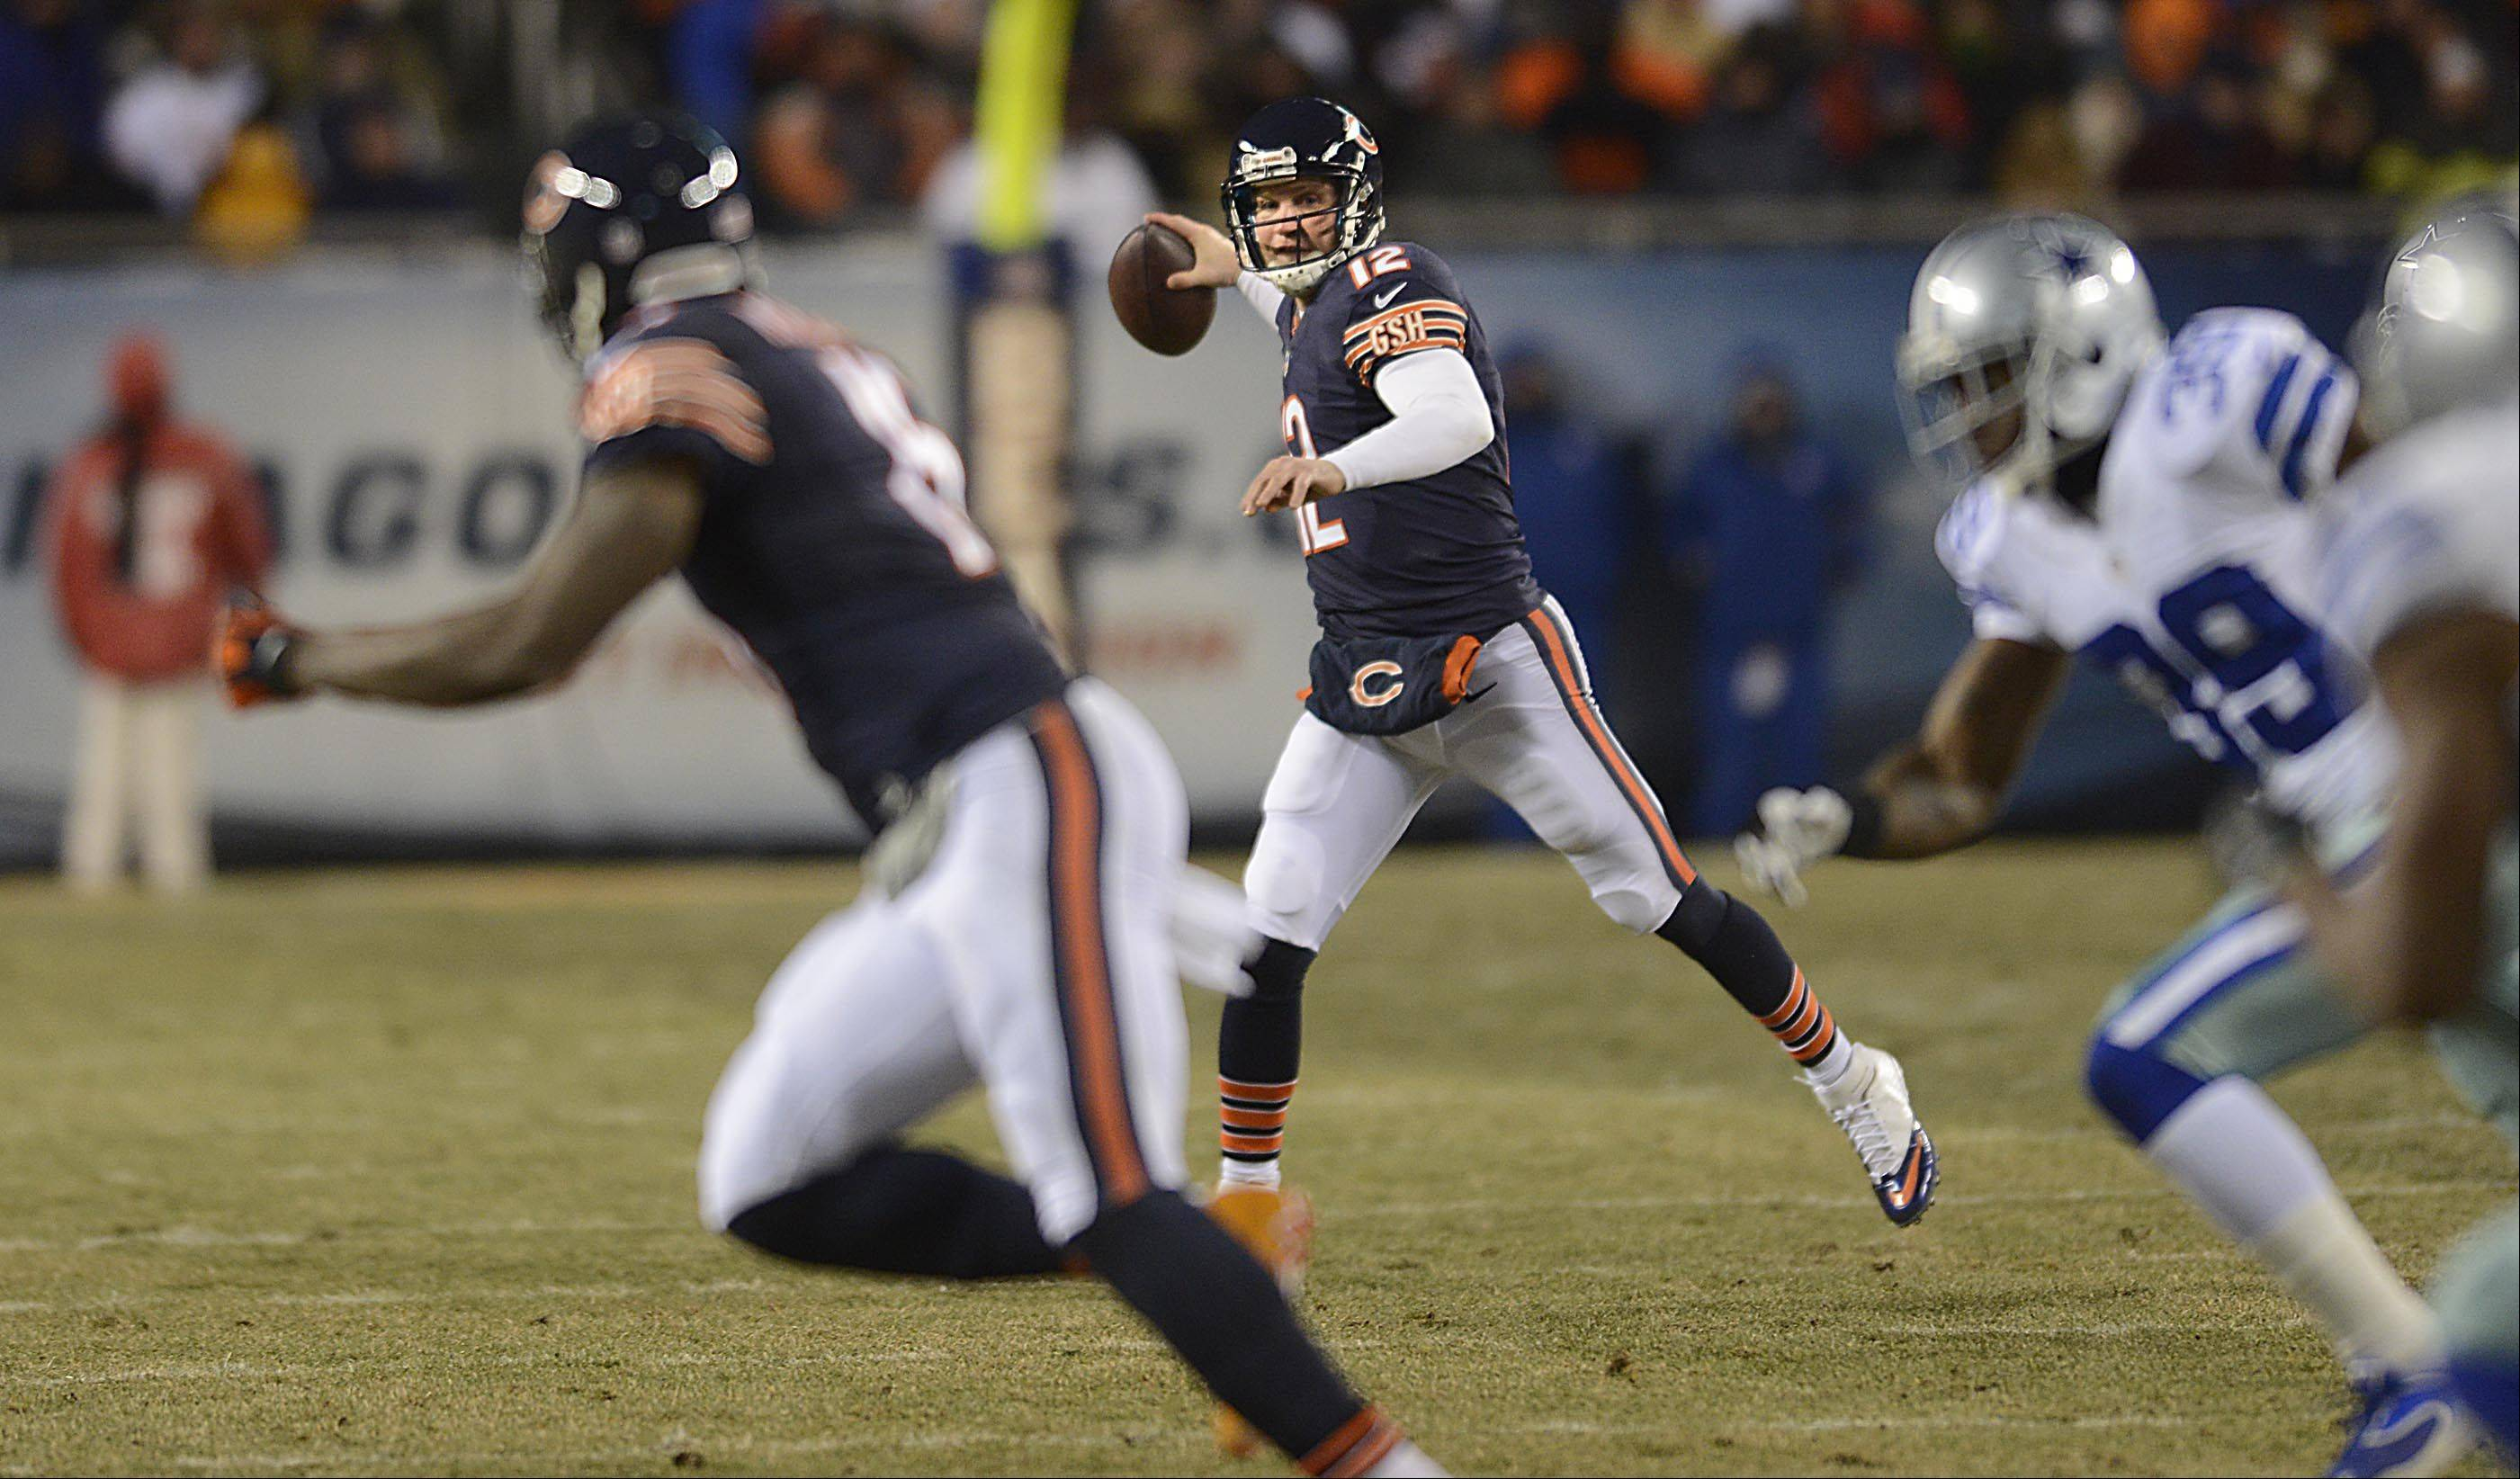 Bears quarterback Josh McCown targets wide receiver Brandon Marshall on Monday night on his way to 348 yards passing. It was McCown's third straight 300-plus game, the first time that has happened in franchise history.